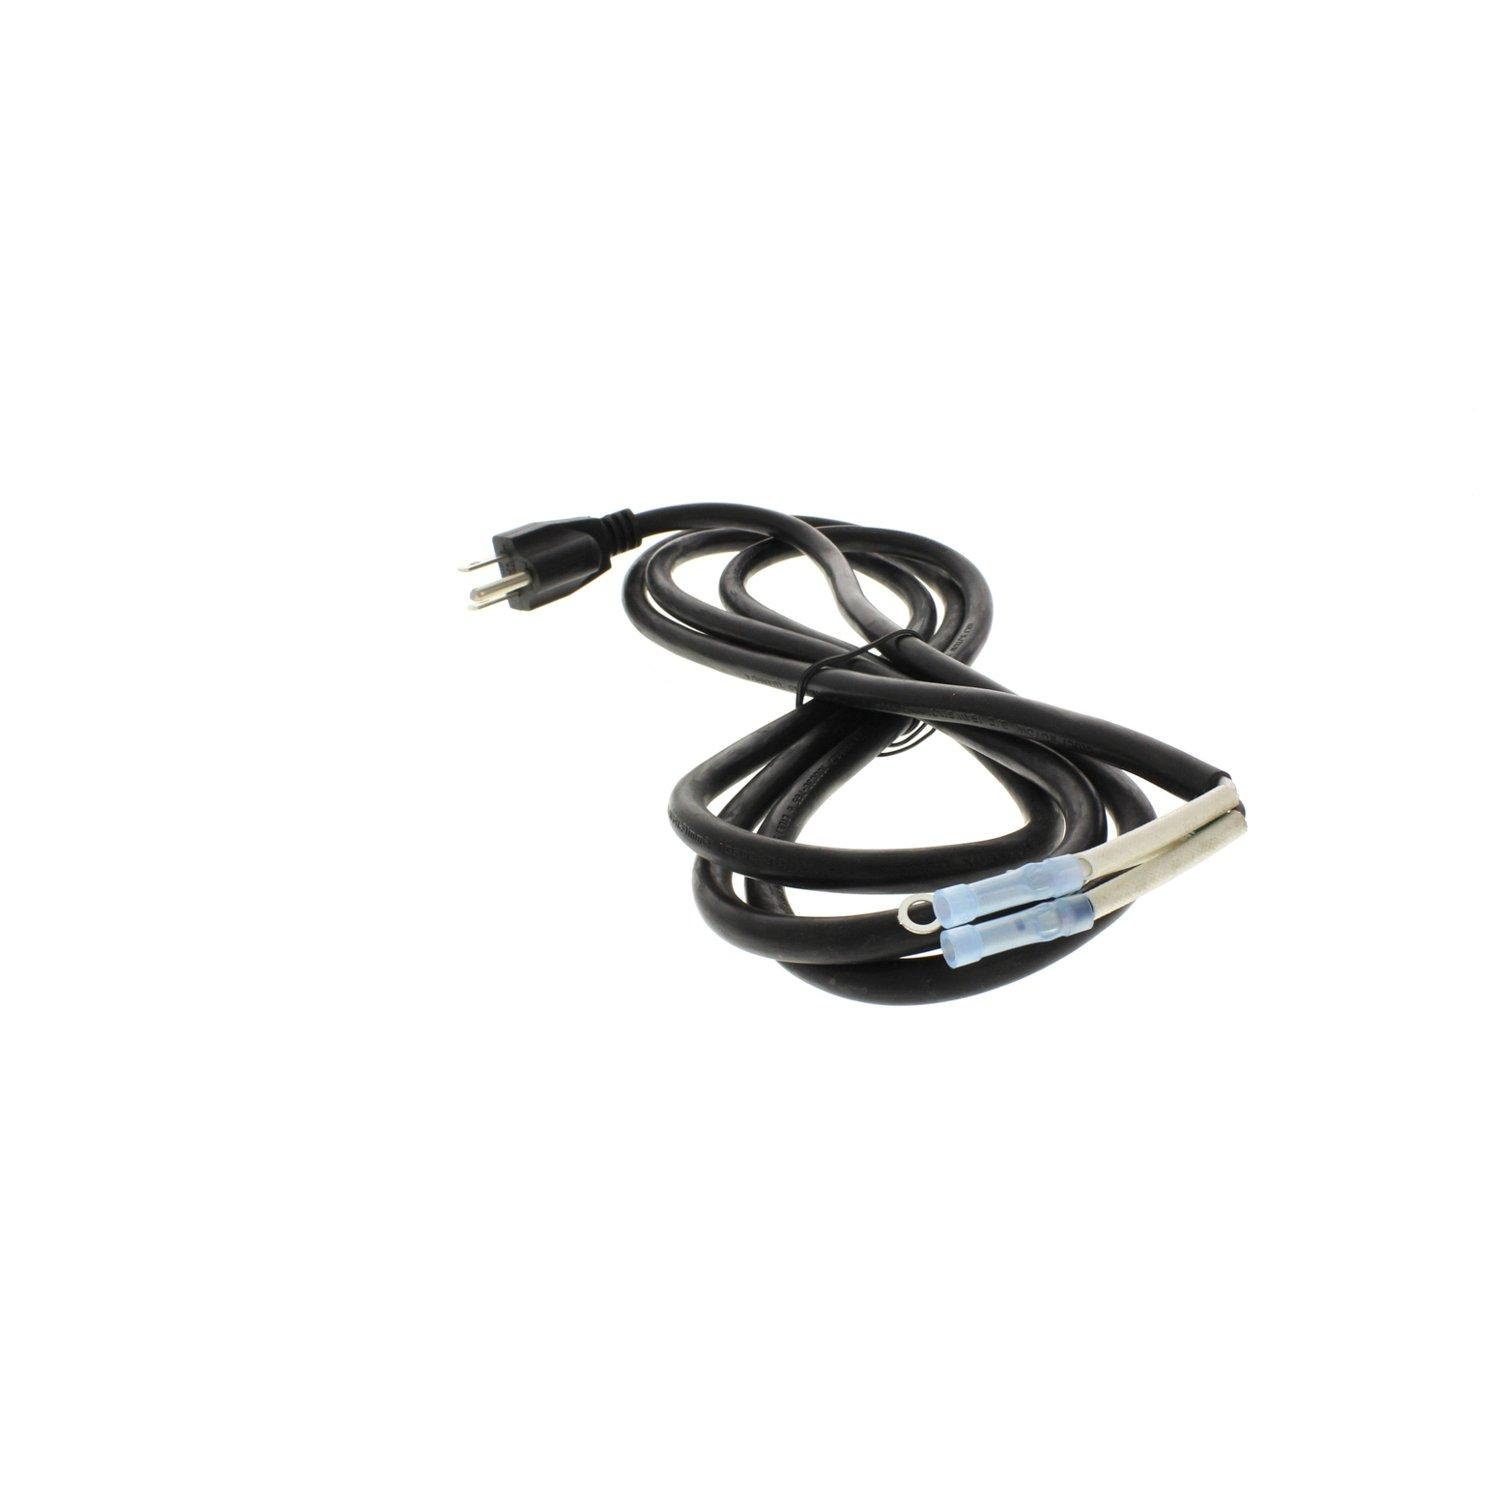 WITTCO POWER CORD 6' W/ PLUG